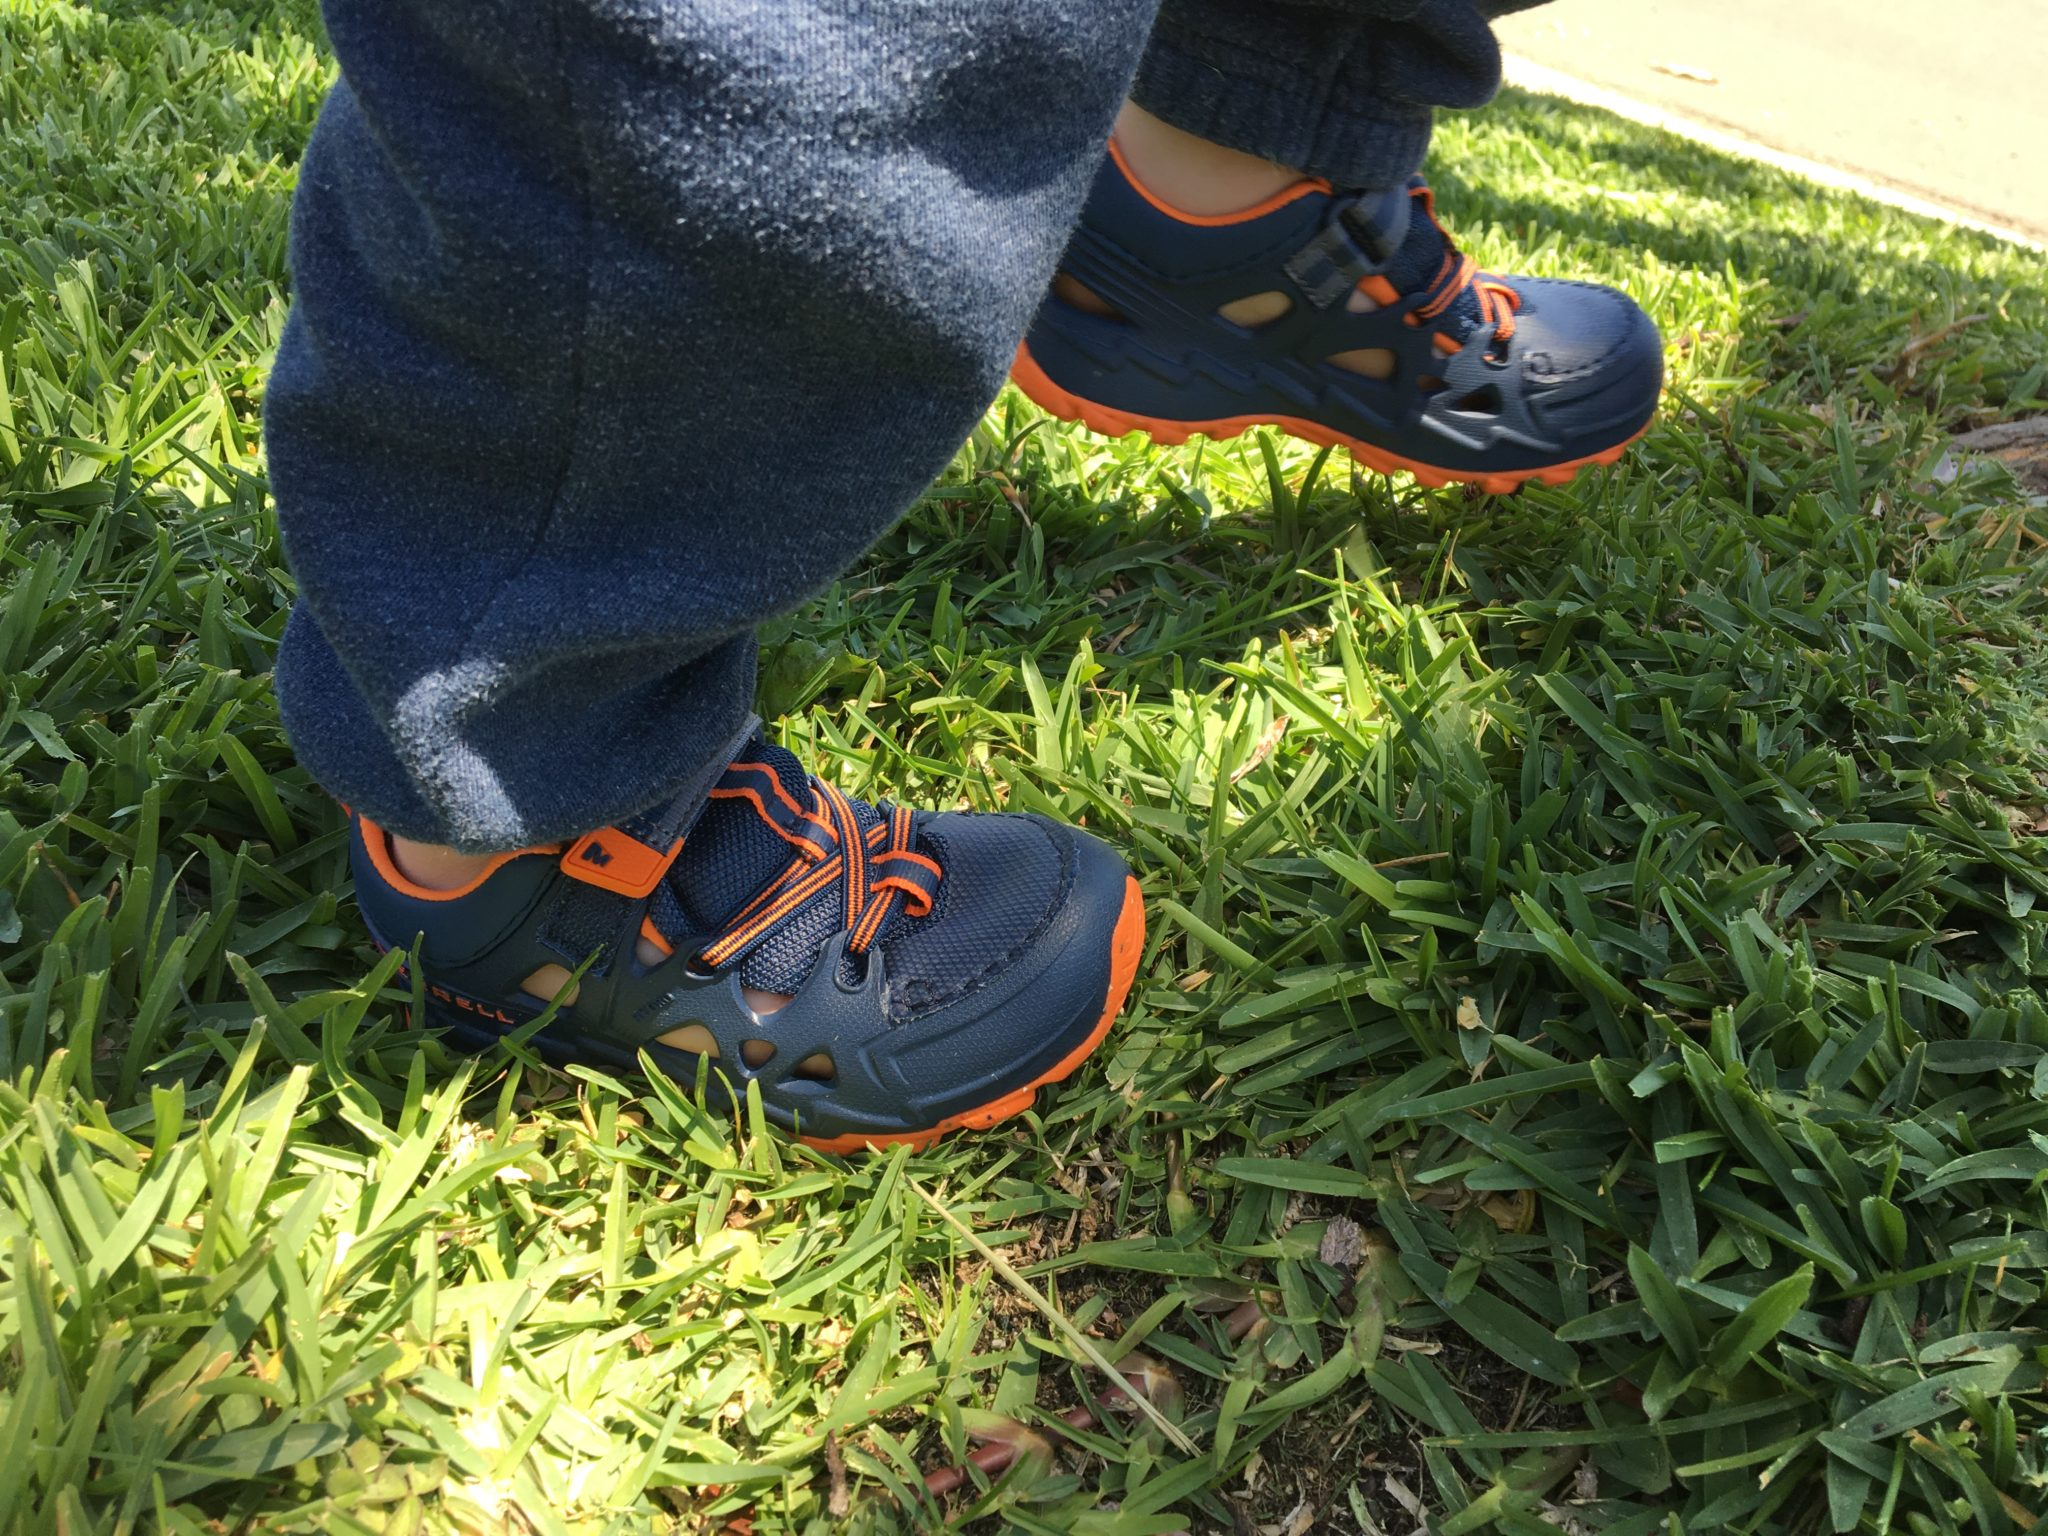 Hiking Baby testing the Merrell Kids Hydro 2.0